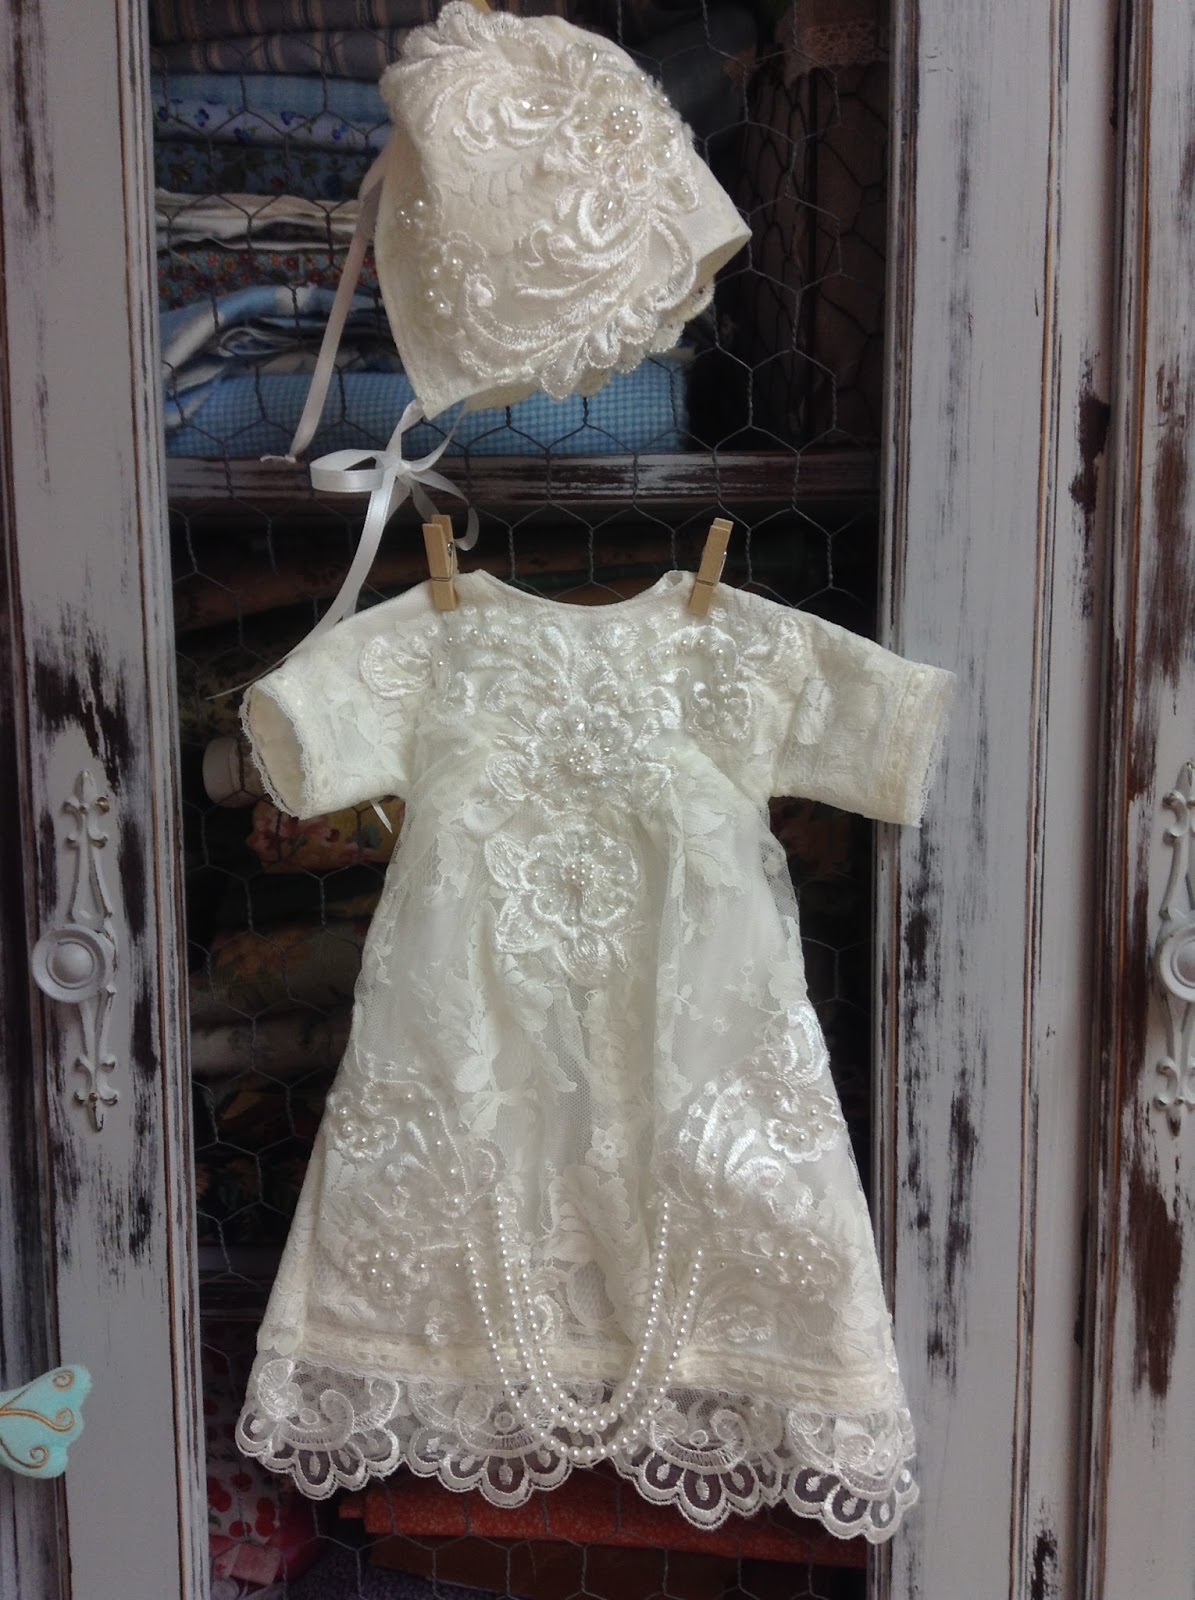 Angel gowns donate for I do foundation donate wedding dress